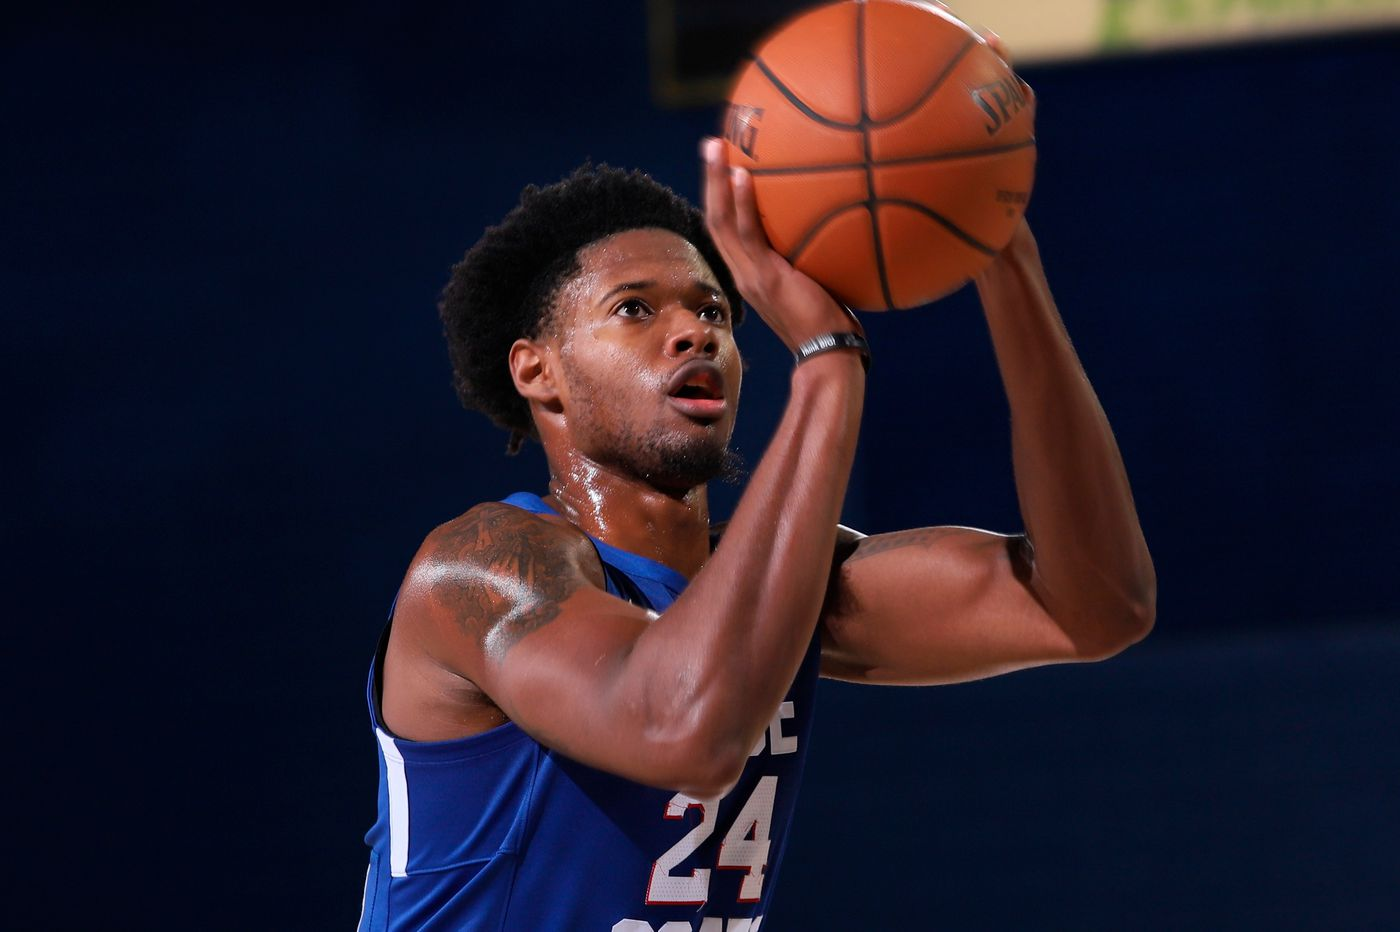 Sixers sign Haywood Highsmith to two-way contract